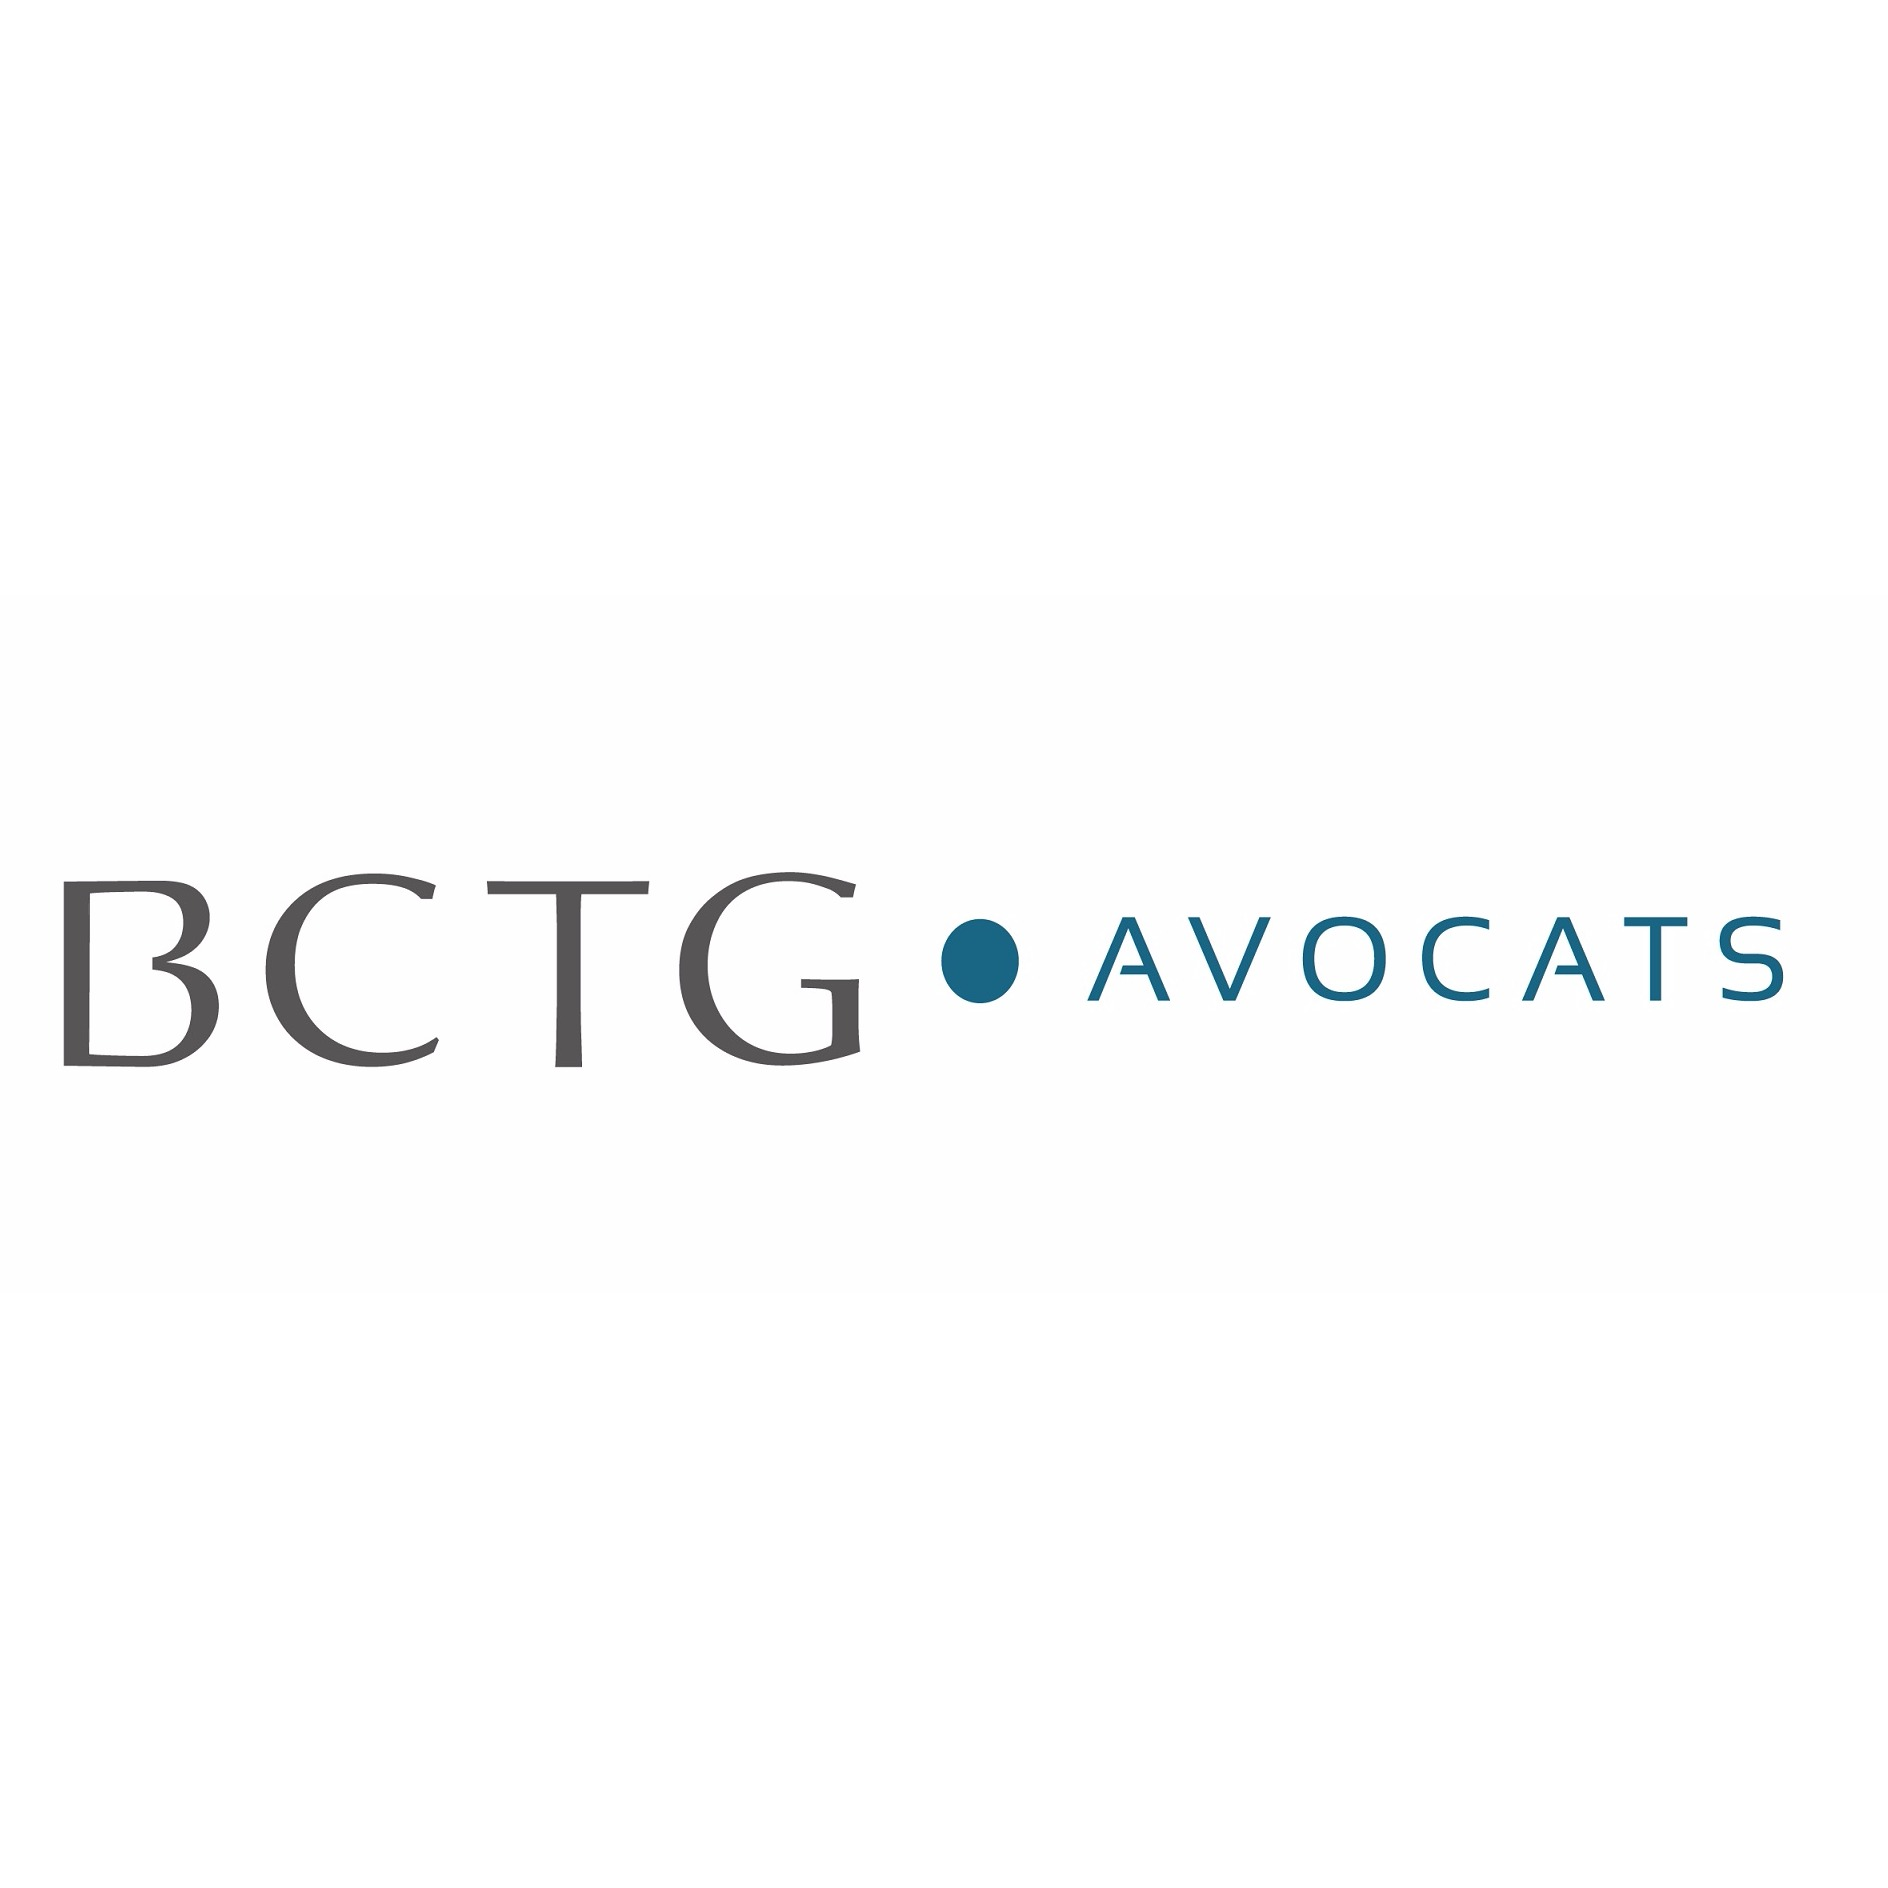 the BCTG Avocats logo.